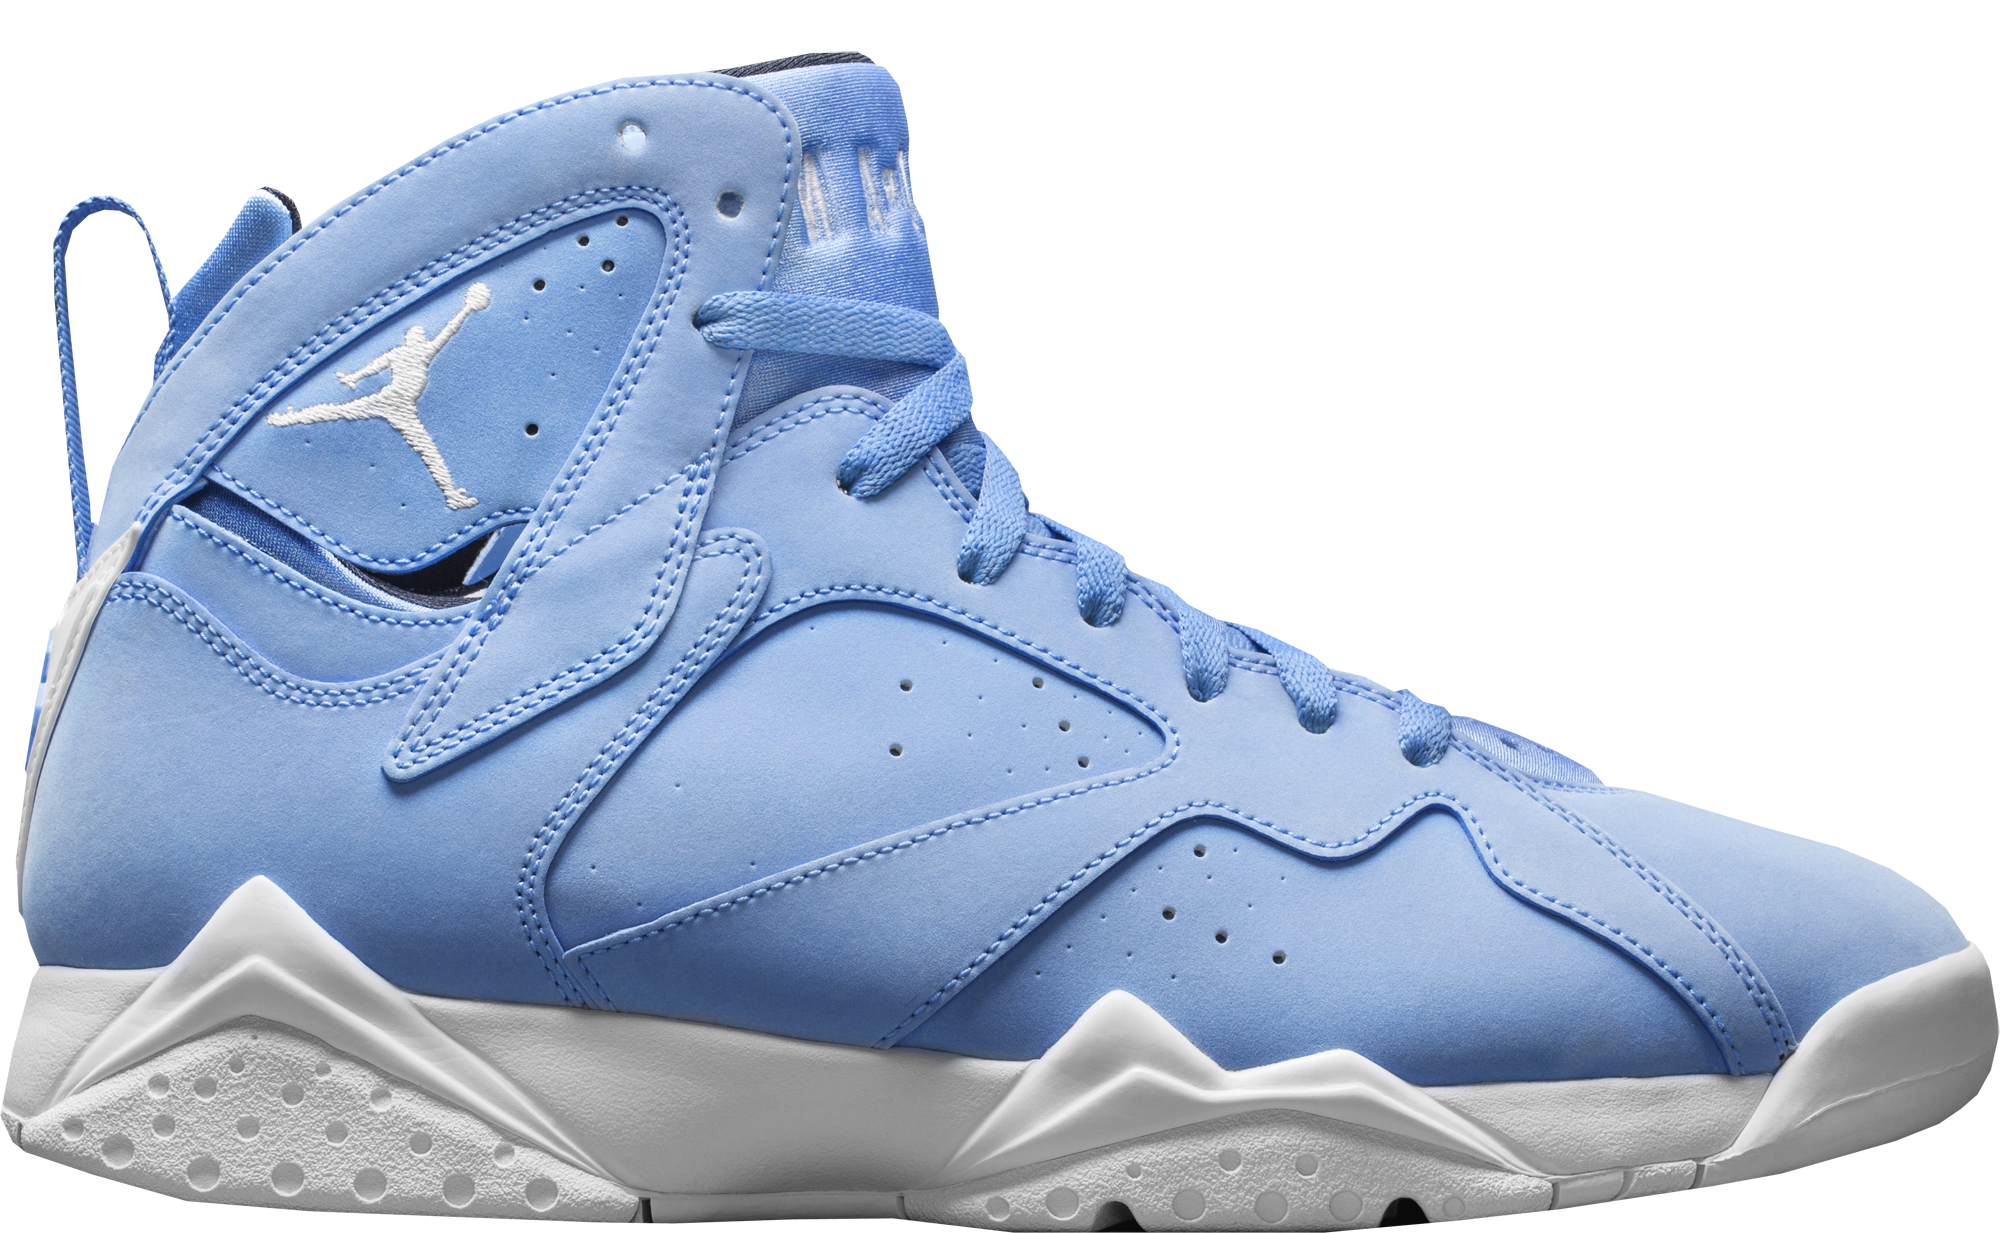 low priced e0a6e 35972 Air Jordan 7 Retro Pantone (2017) - StockX News